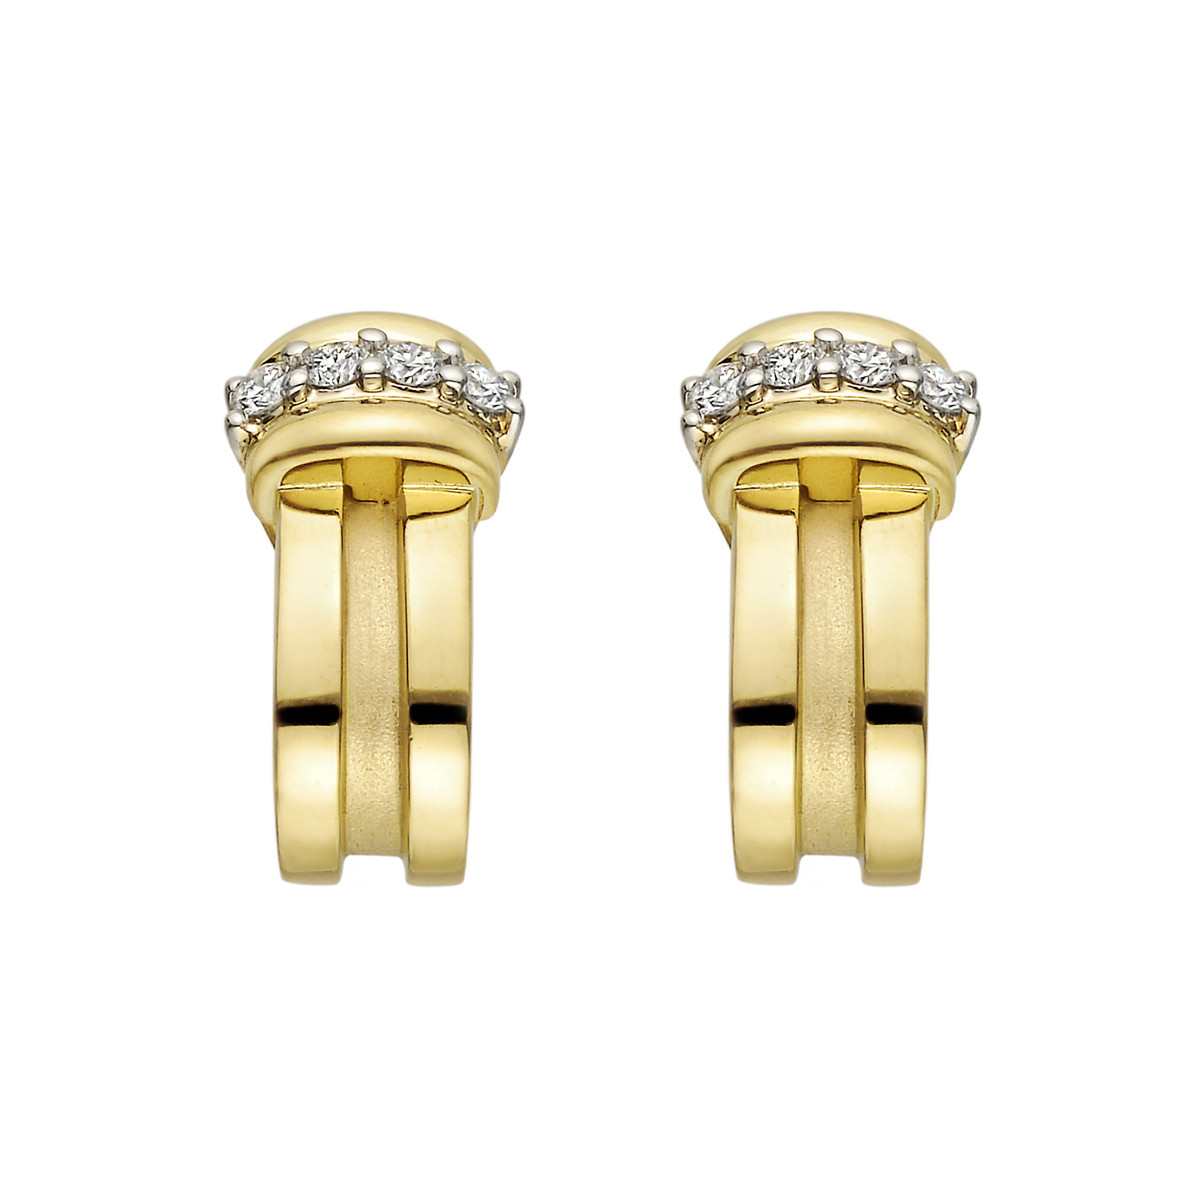 18k Yellow Gold & Diamond Fluted Half-Hoop Earrings